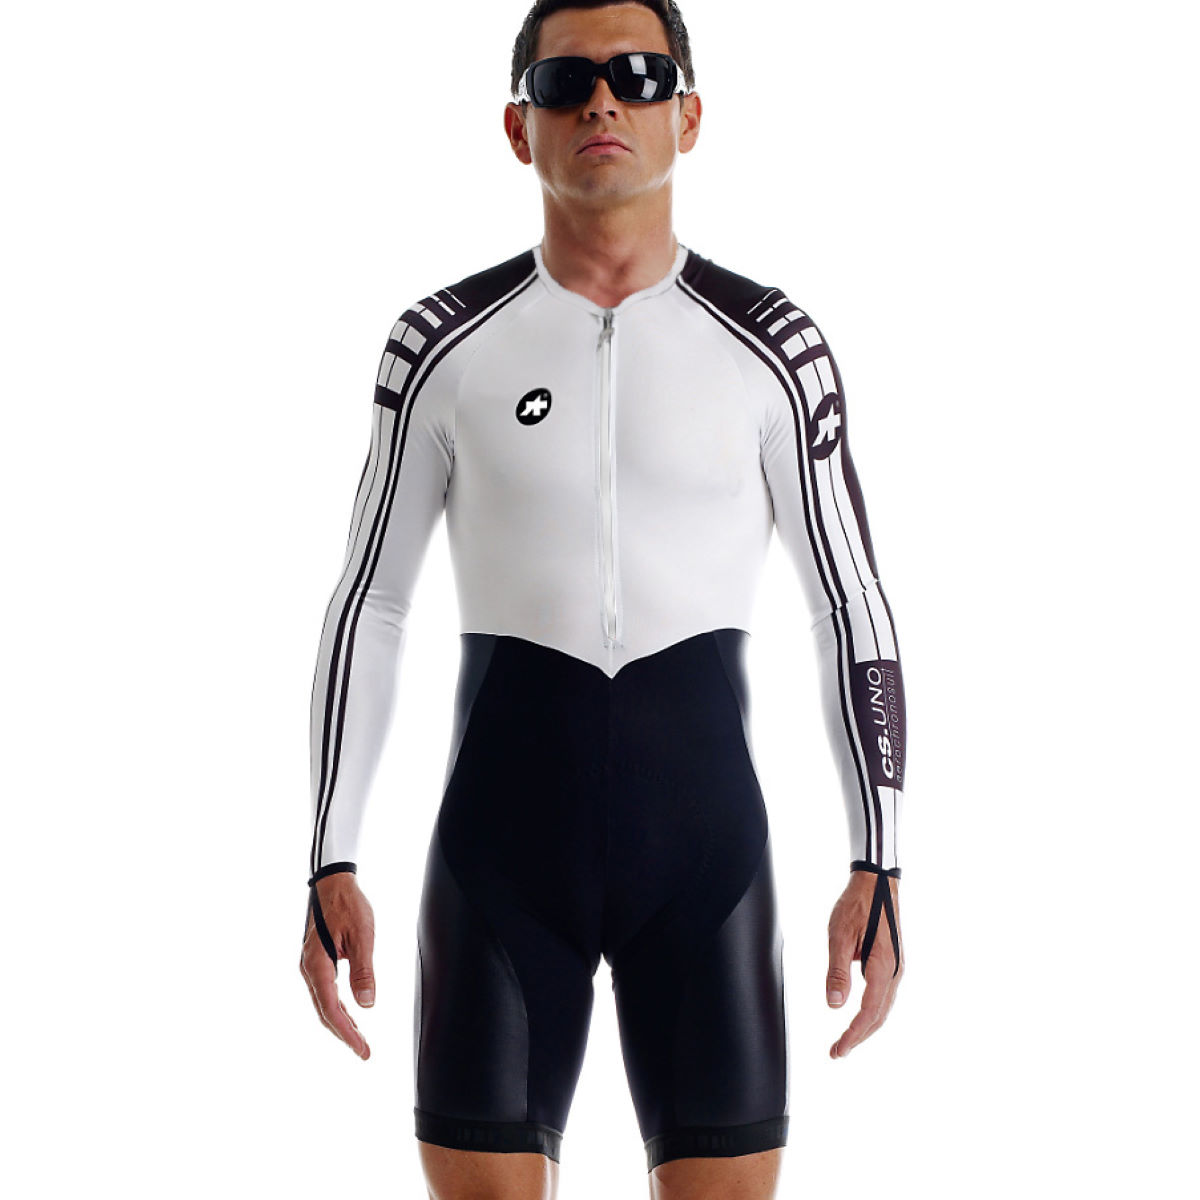 Assos CS.Uno_s5 Chronosuit   Lycra Cycling Shorts